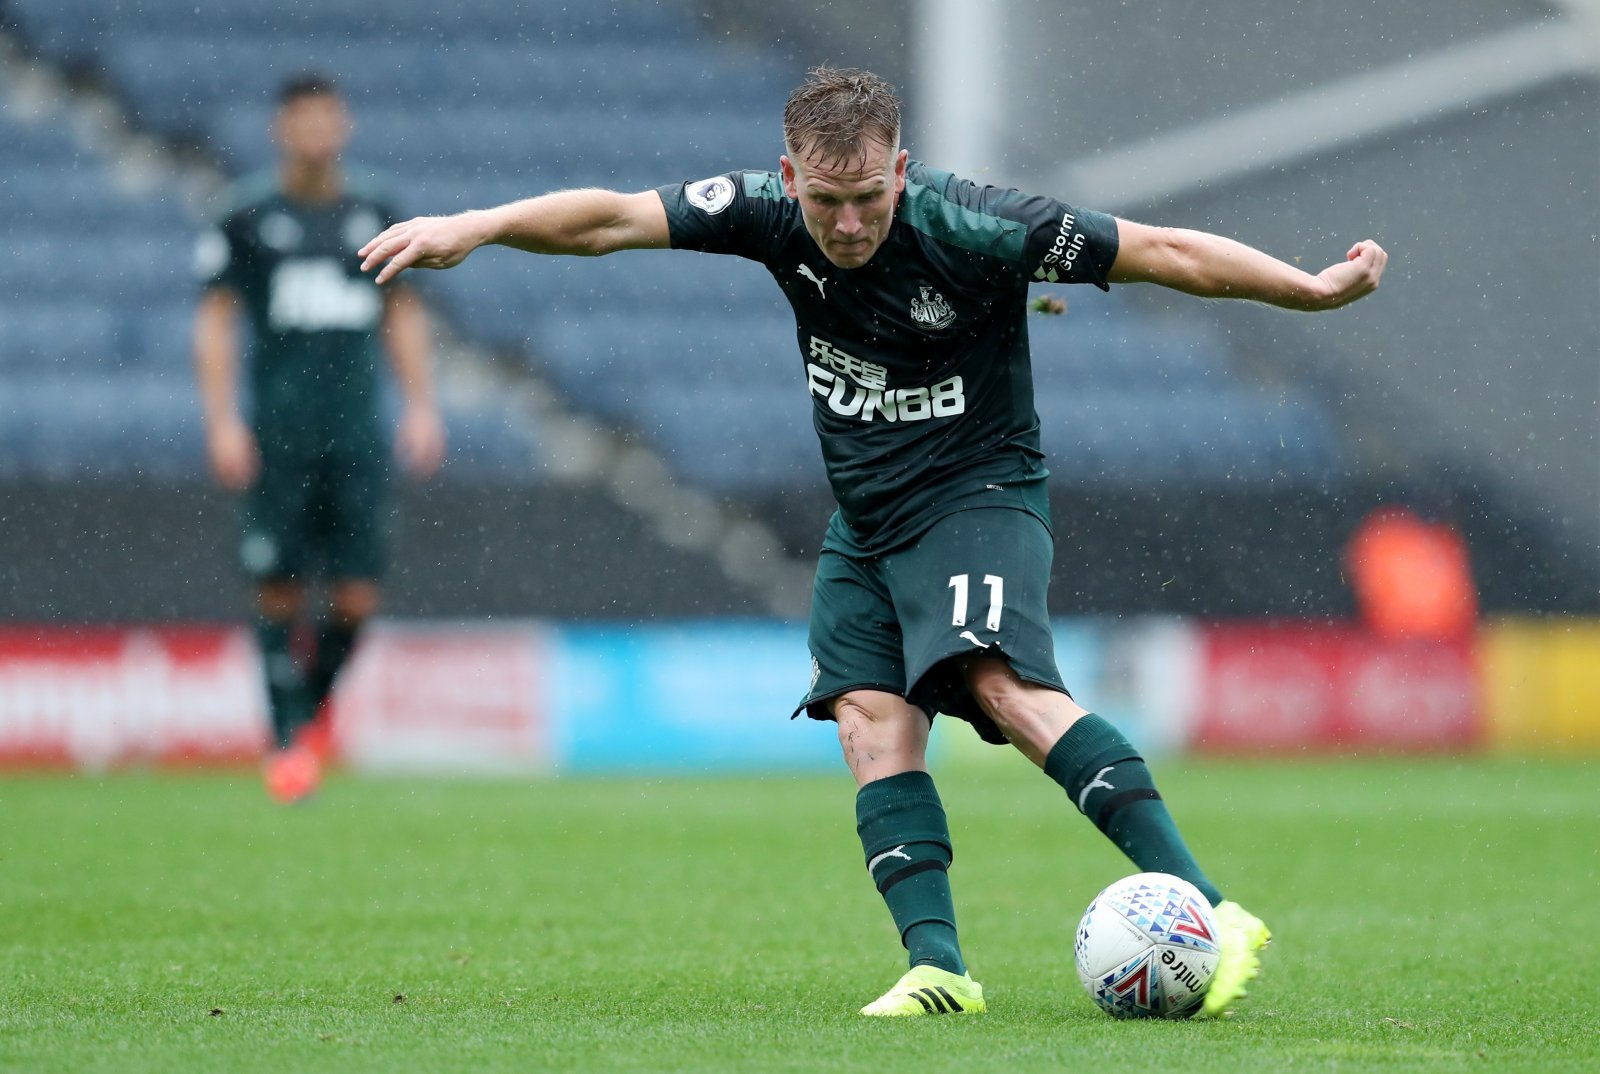 Newcastle United: Bruce confident Ritchie is on the right tracks with recovery